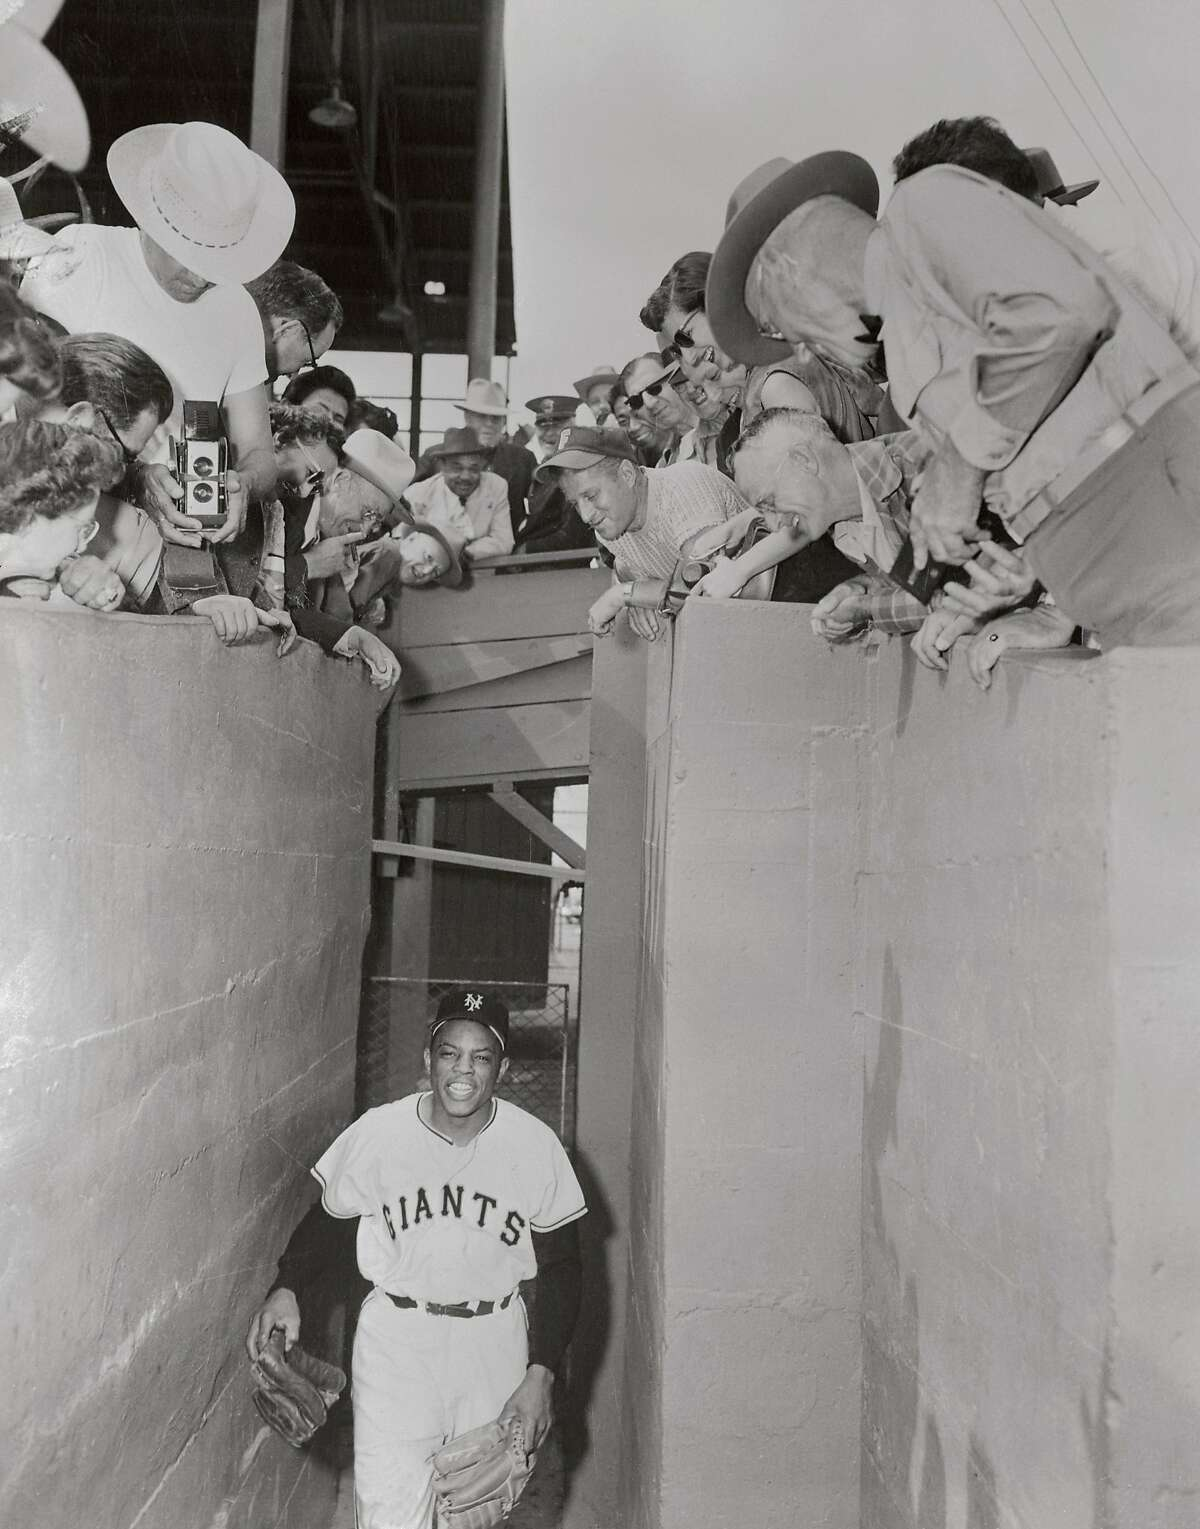 (Original Caption) Fans at New York Giants spring training camp watch Willie Mays as he comes from the locker room in this photo.